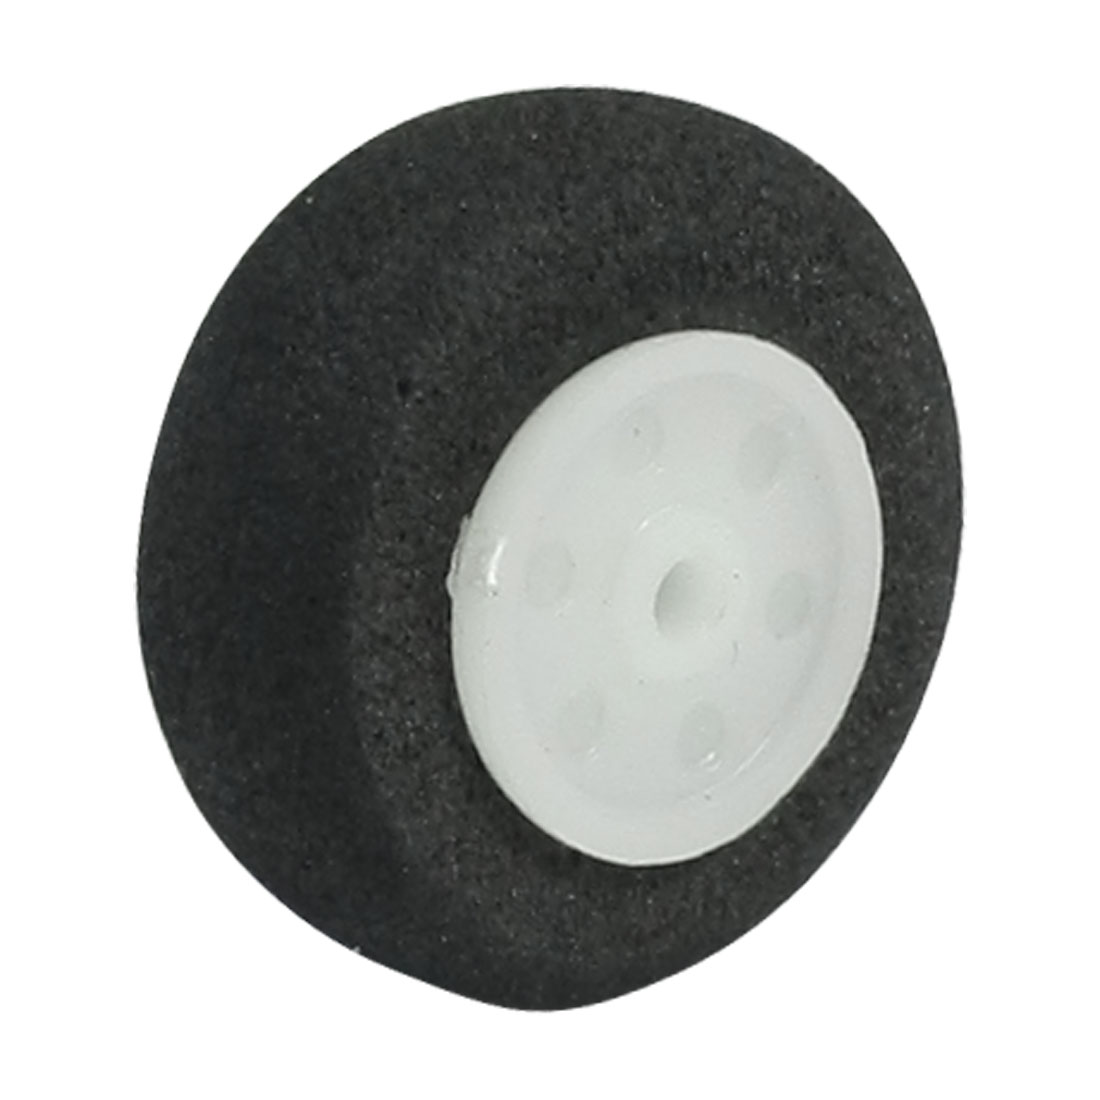 DIY RC Airplane Plastic Hub 20mm Diameter Foam Tire Wheel